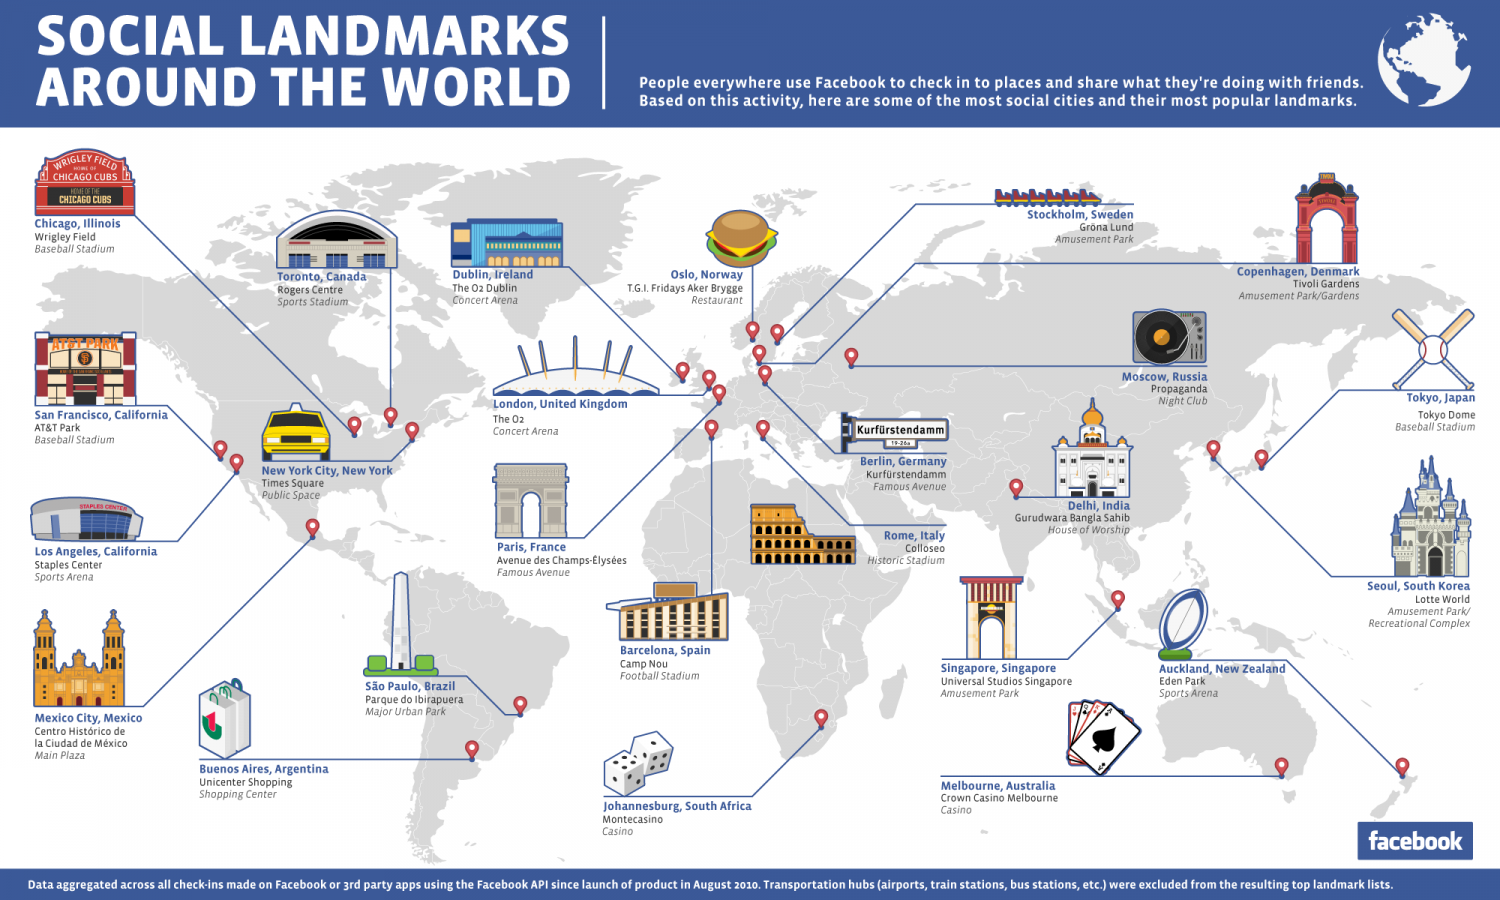 Social Landmarks Around the World Infographic